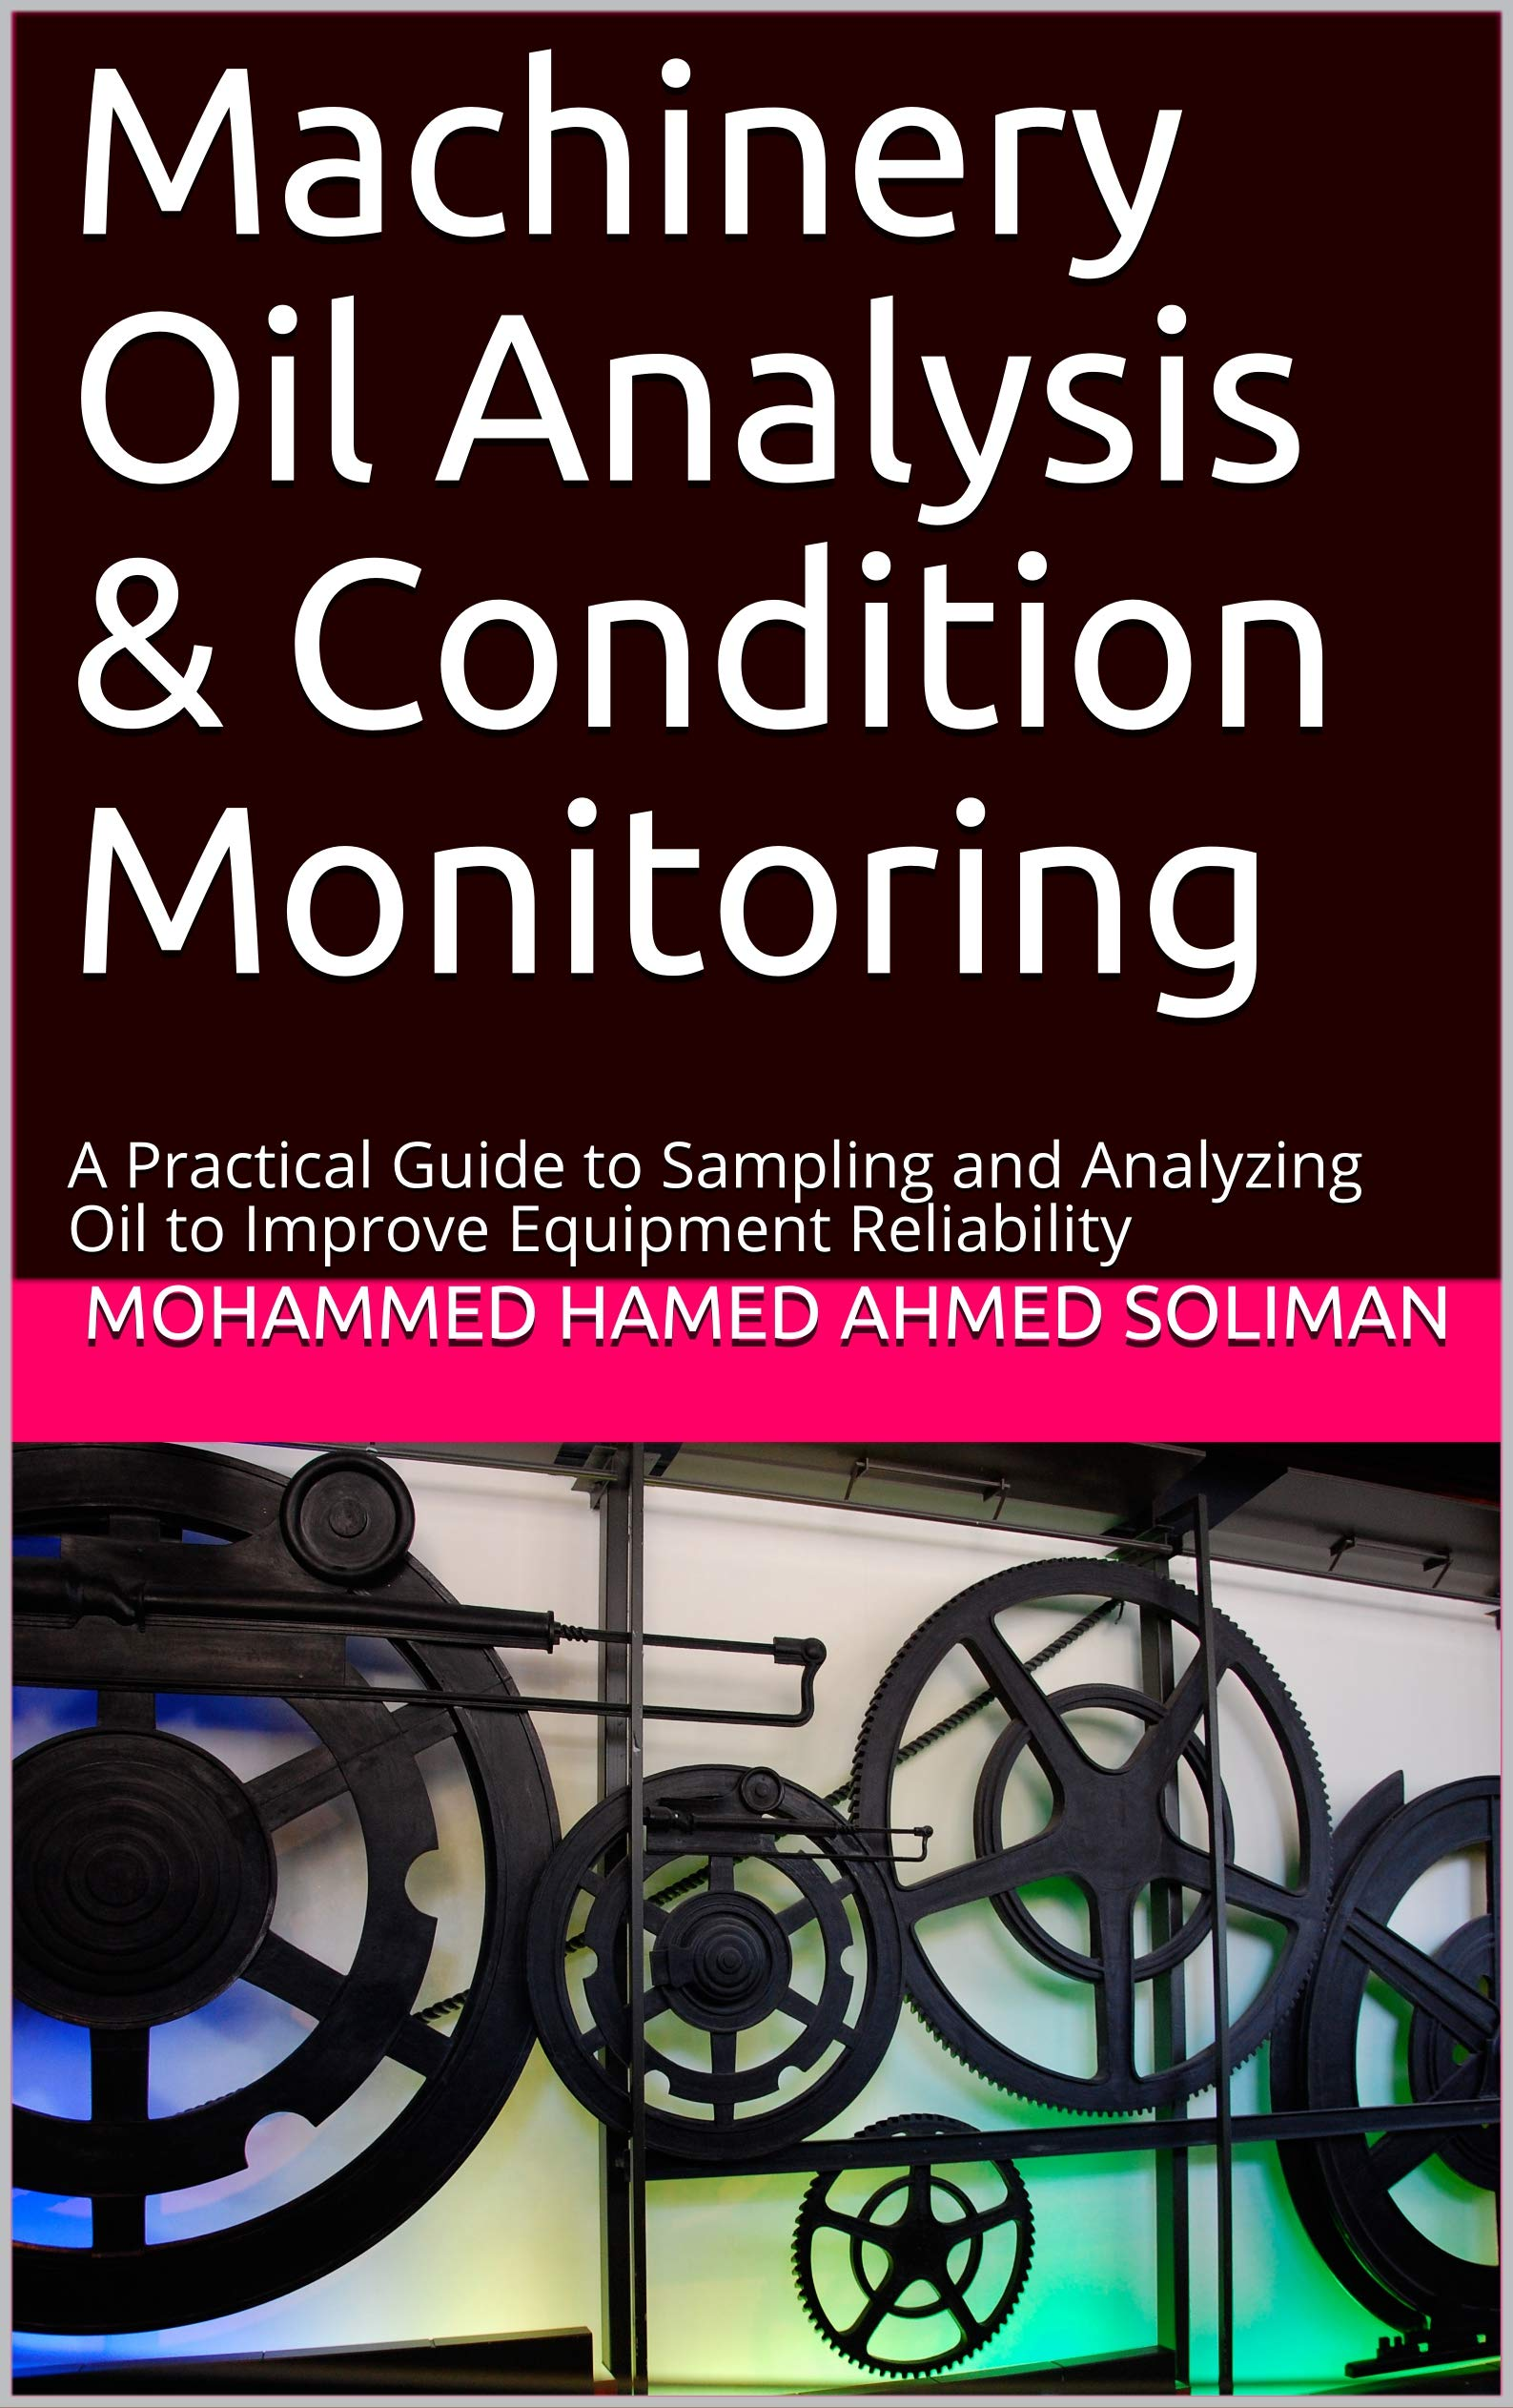 Machinery Oil Analysis & Condition Monitoring : A Practical Guide to Sampling and Analyzing Oil to Improve Equipment Reliability